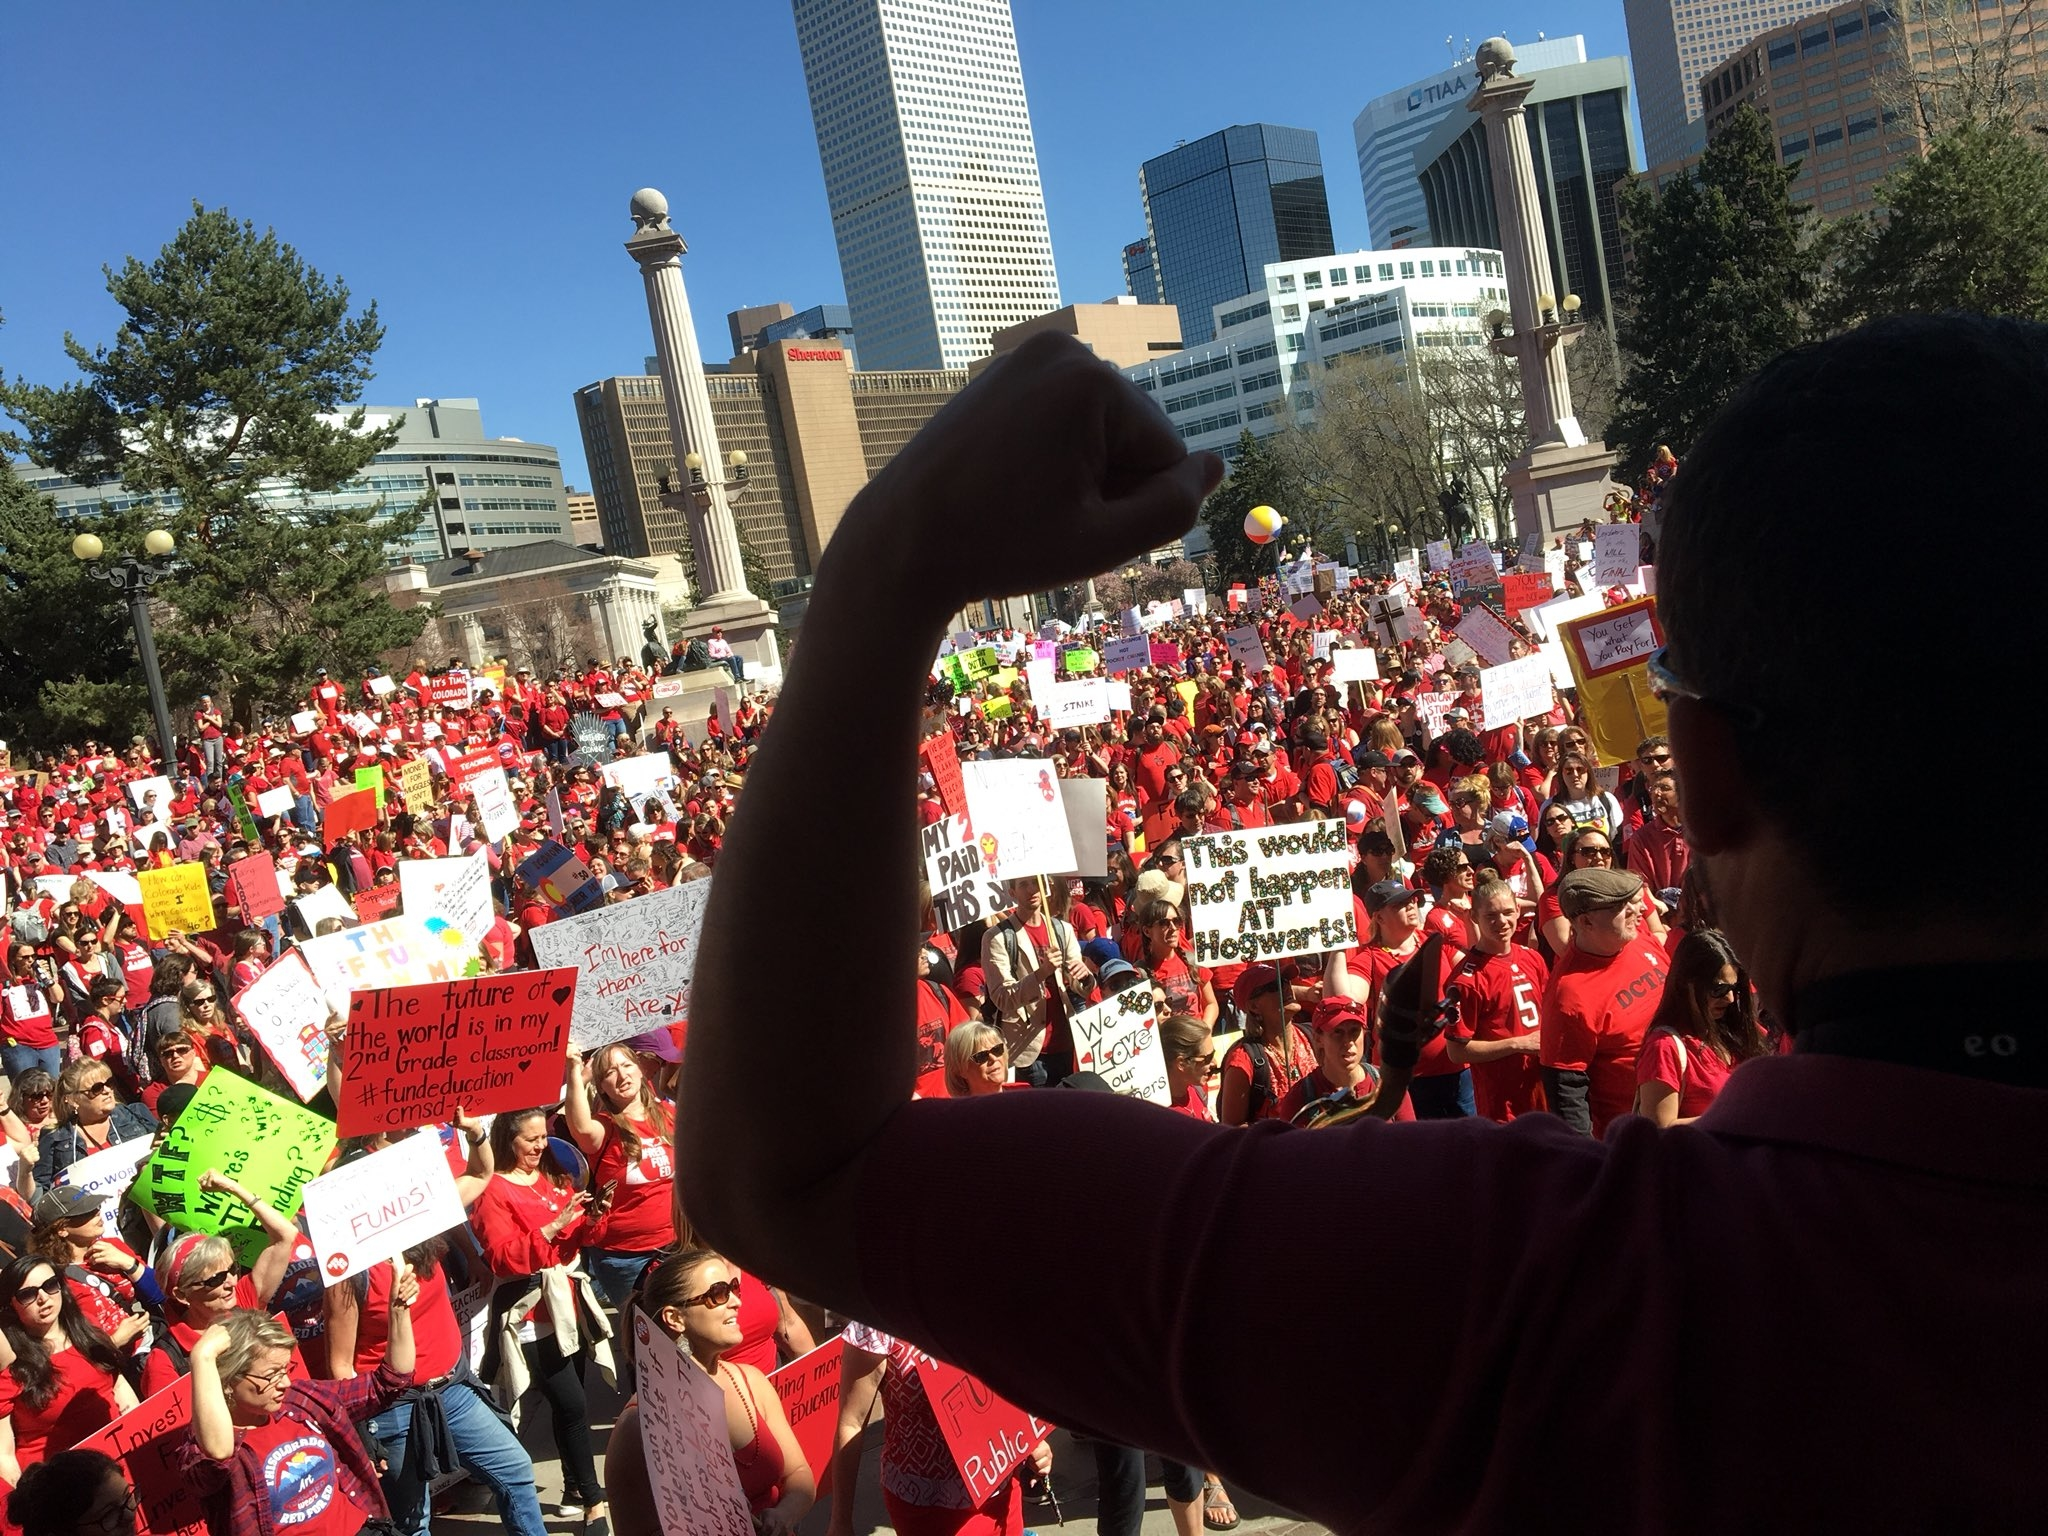 <p>A huge crowd gathered in Civic Center Park in Denver as the Colorado teacher walkout enters day two in April 2018.</p>